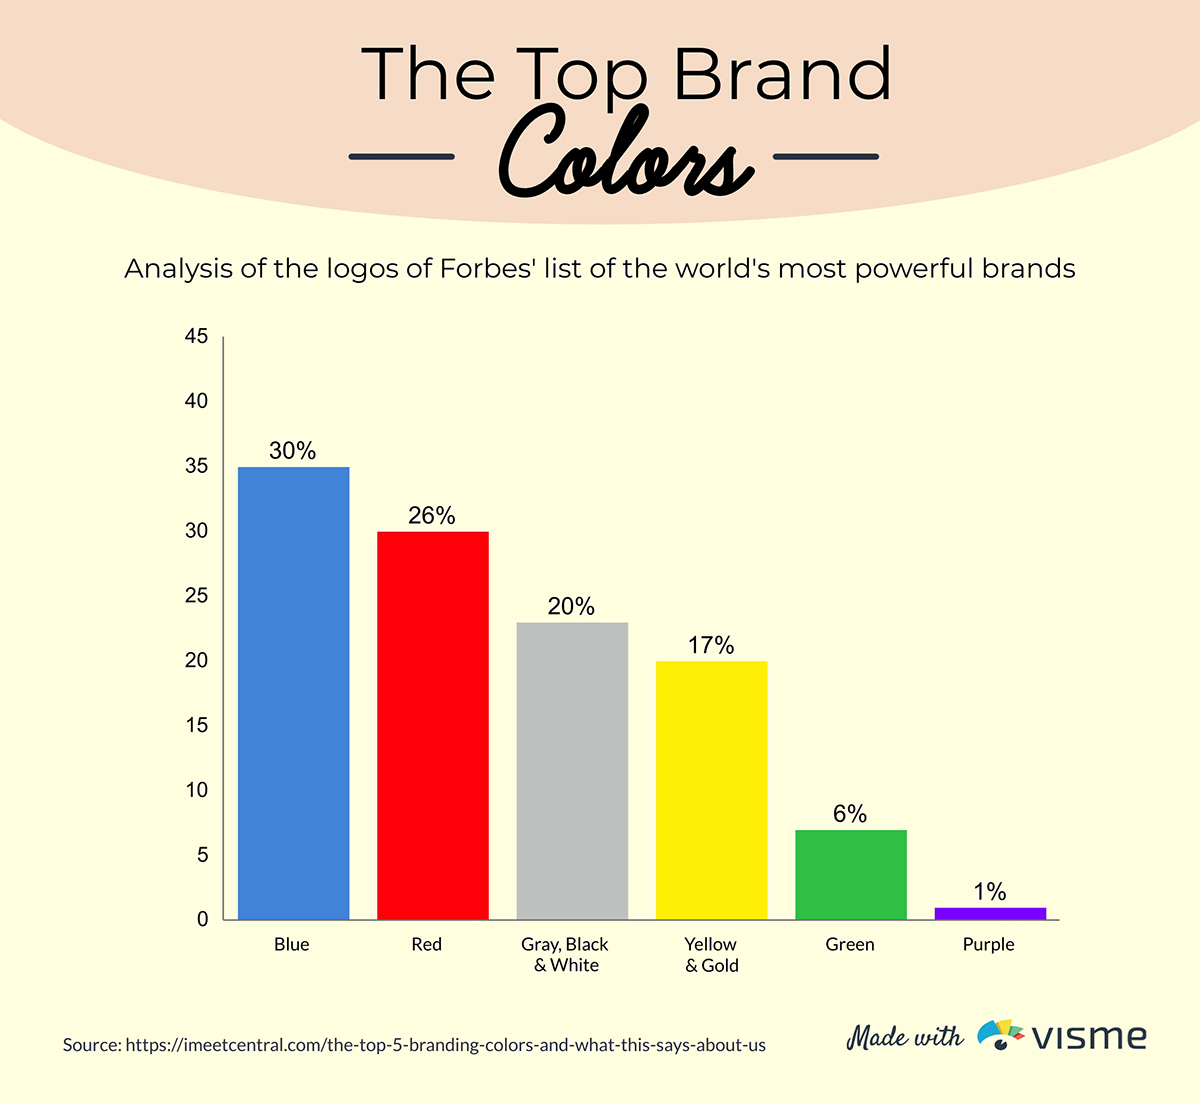 A bar graph showing the top brand colors.